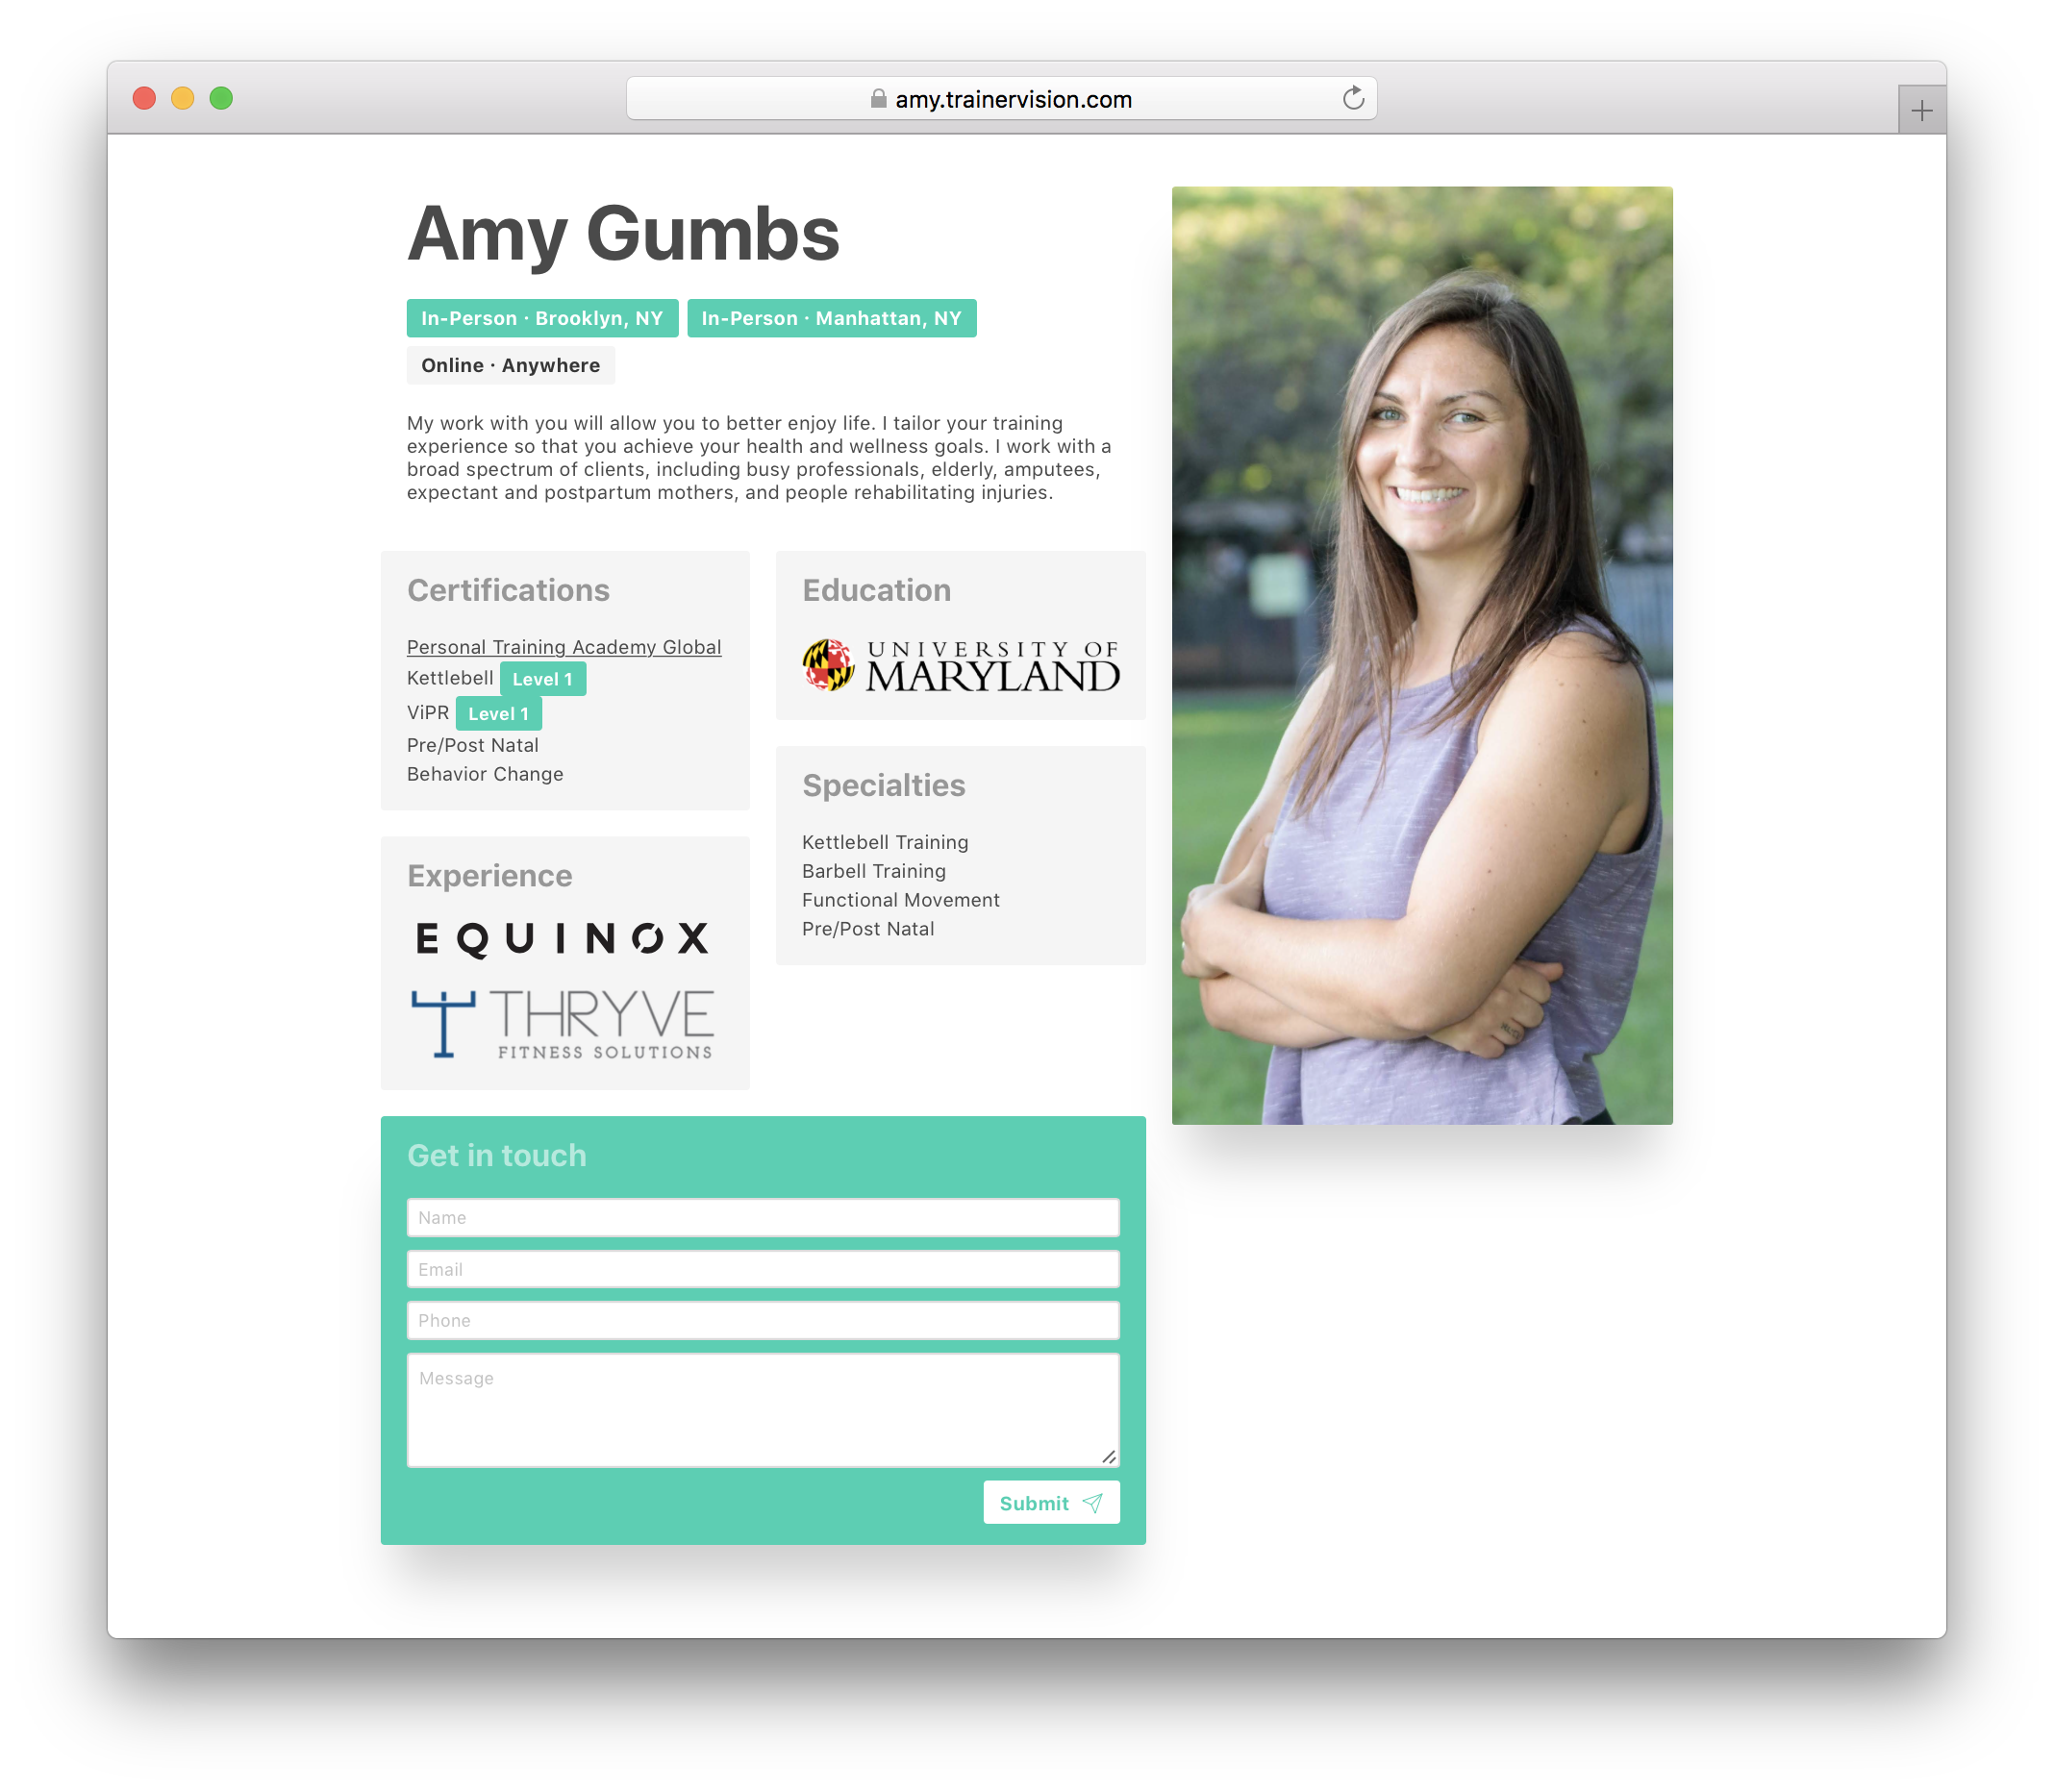 Amy's site